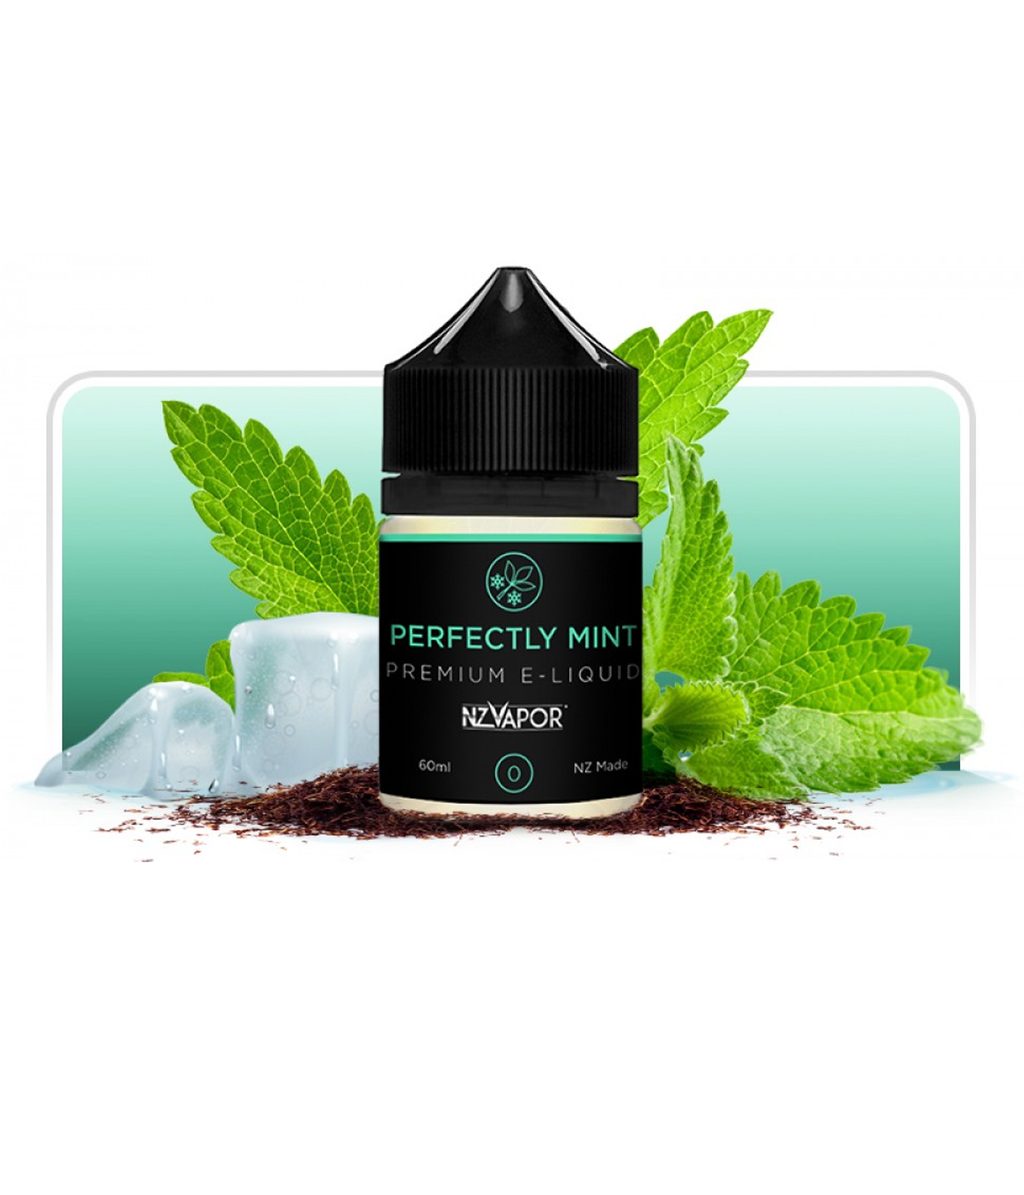 Perfectly Mint E-Liquid 60ml-Purplevibe